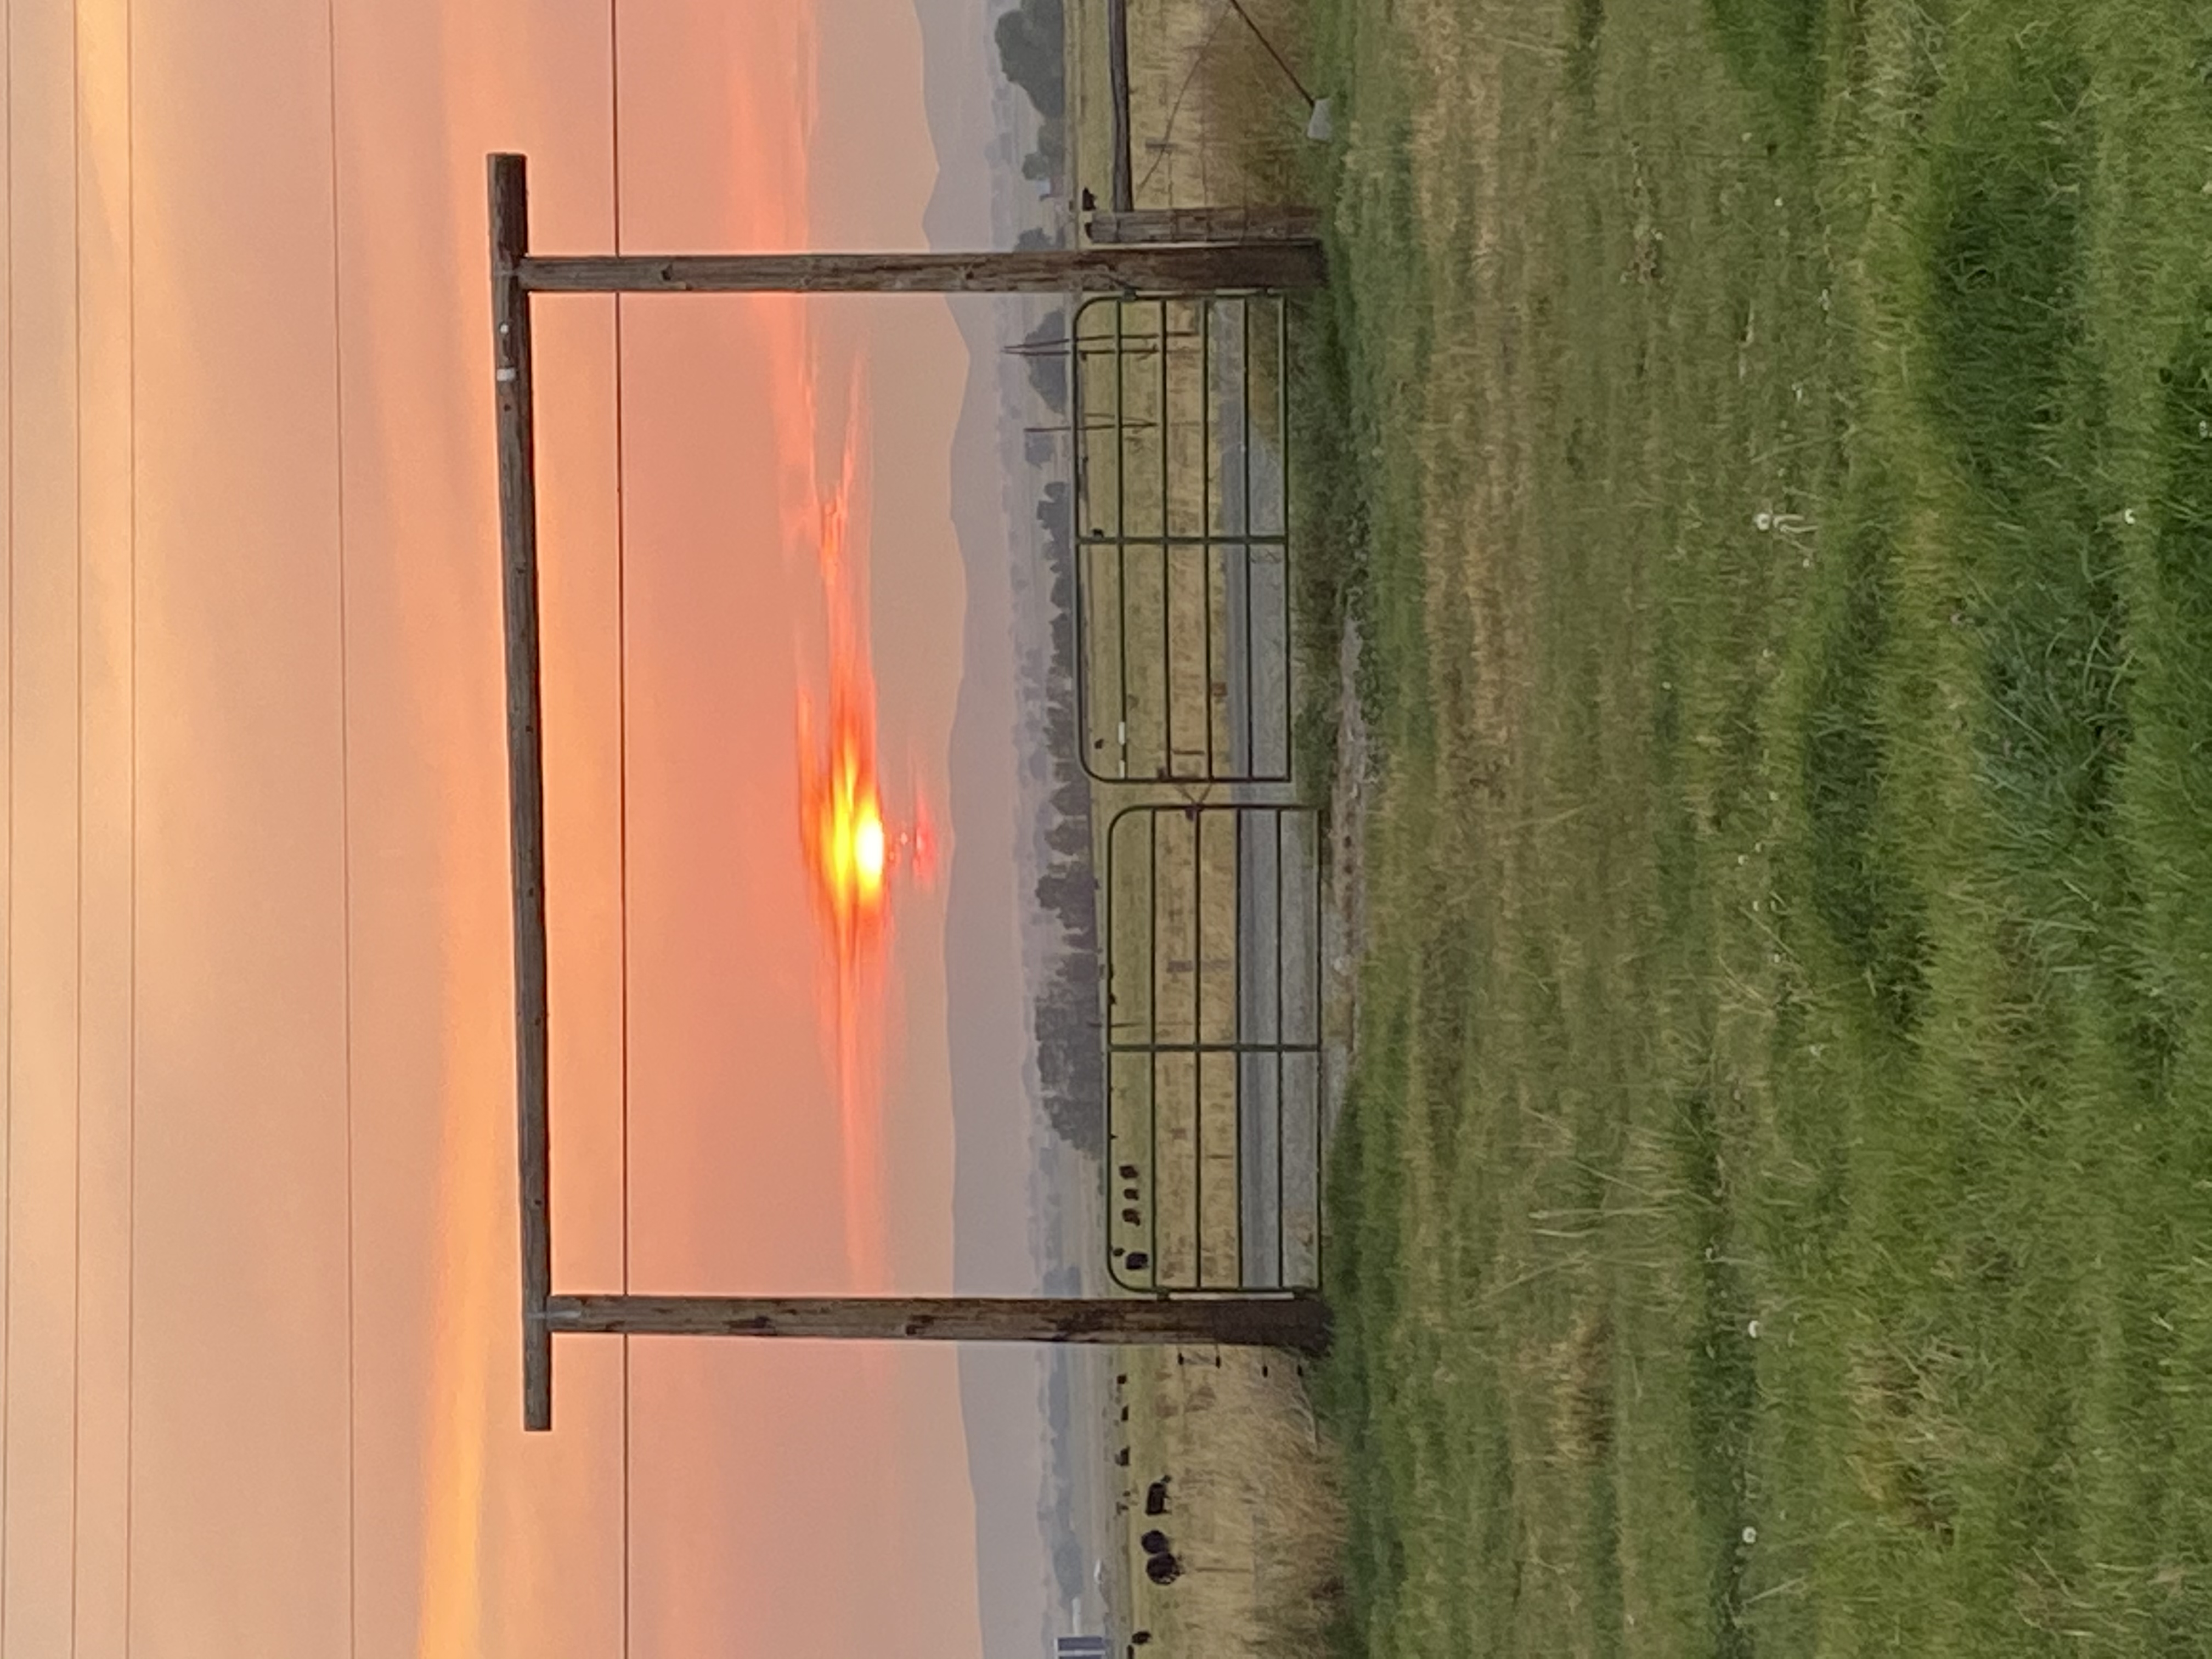 SMOKEY SUNRISE IN THE BAKER VALLEY